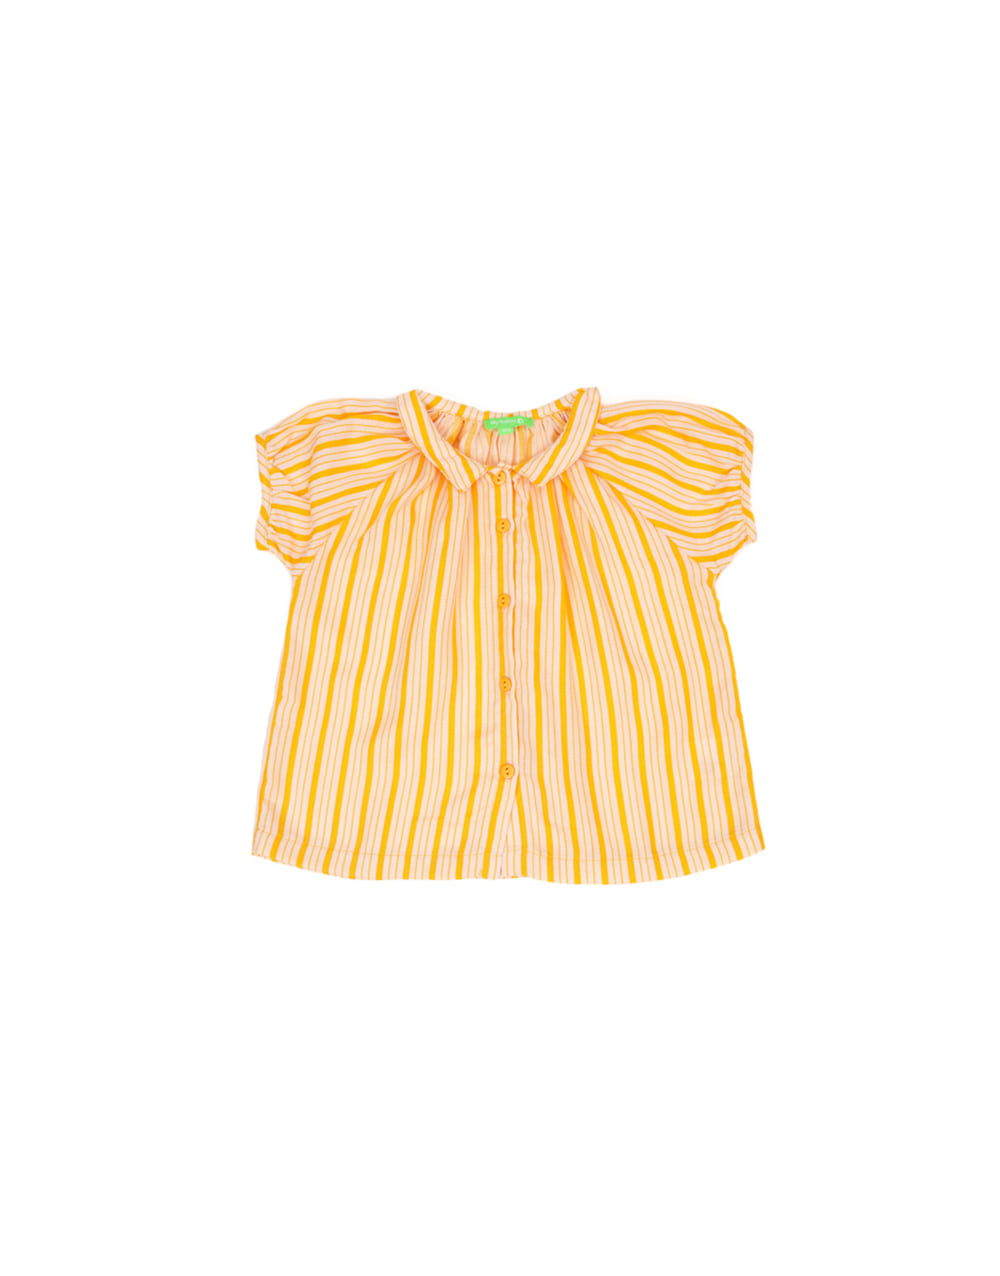 LILY BALOU   Marit Blouse   Juicy Stripes